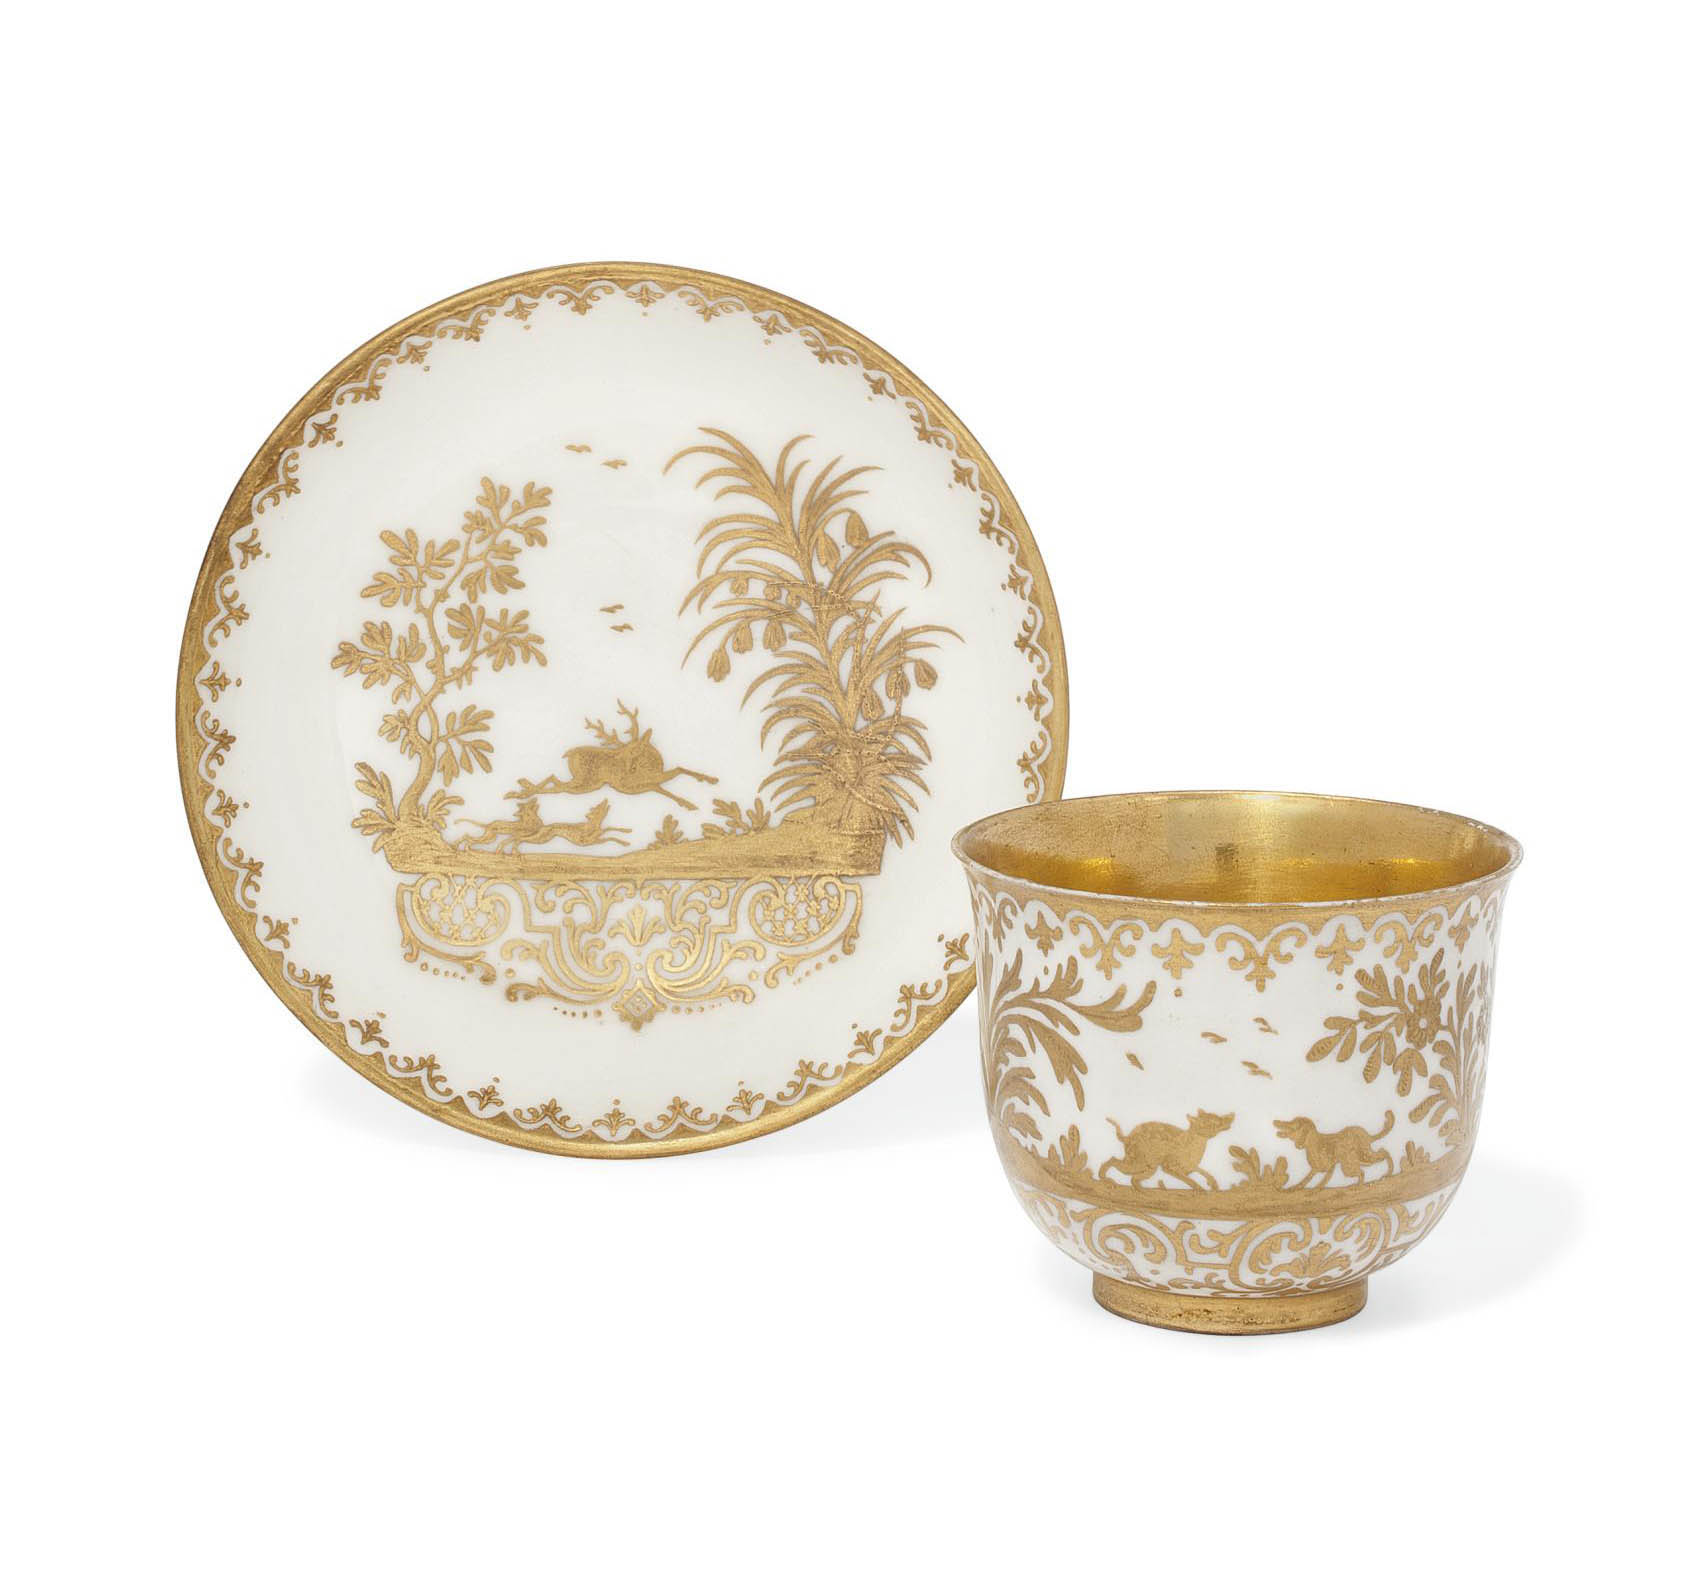 A CAPODIMONTE CUP AND SAUCER